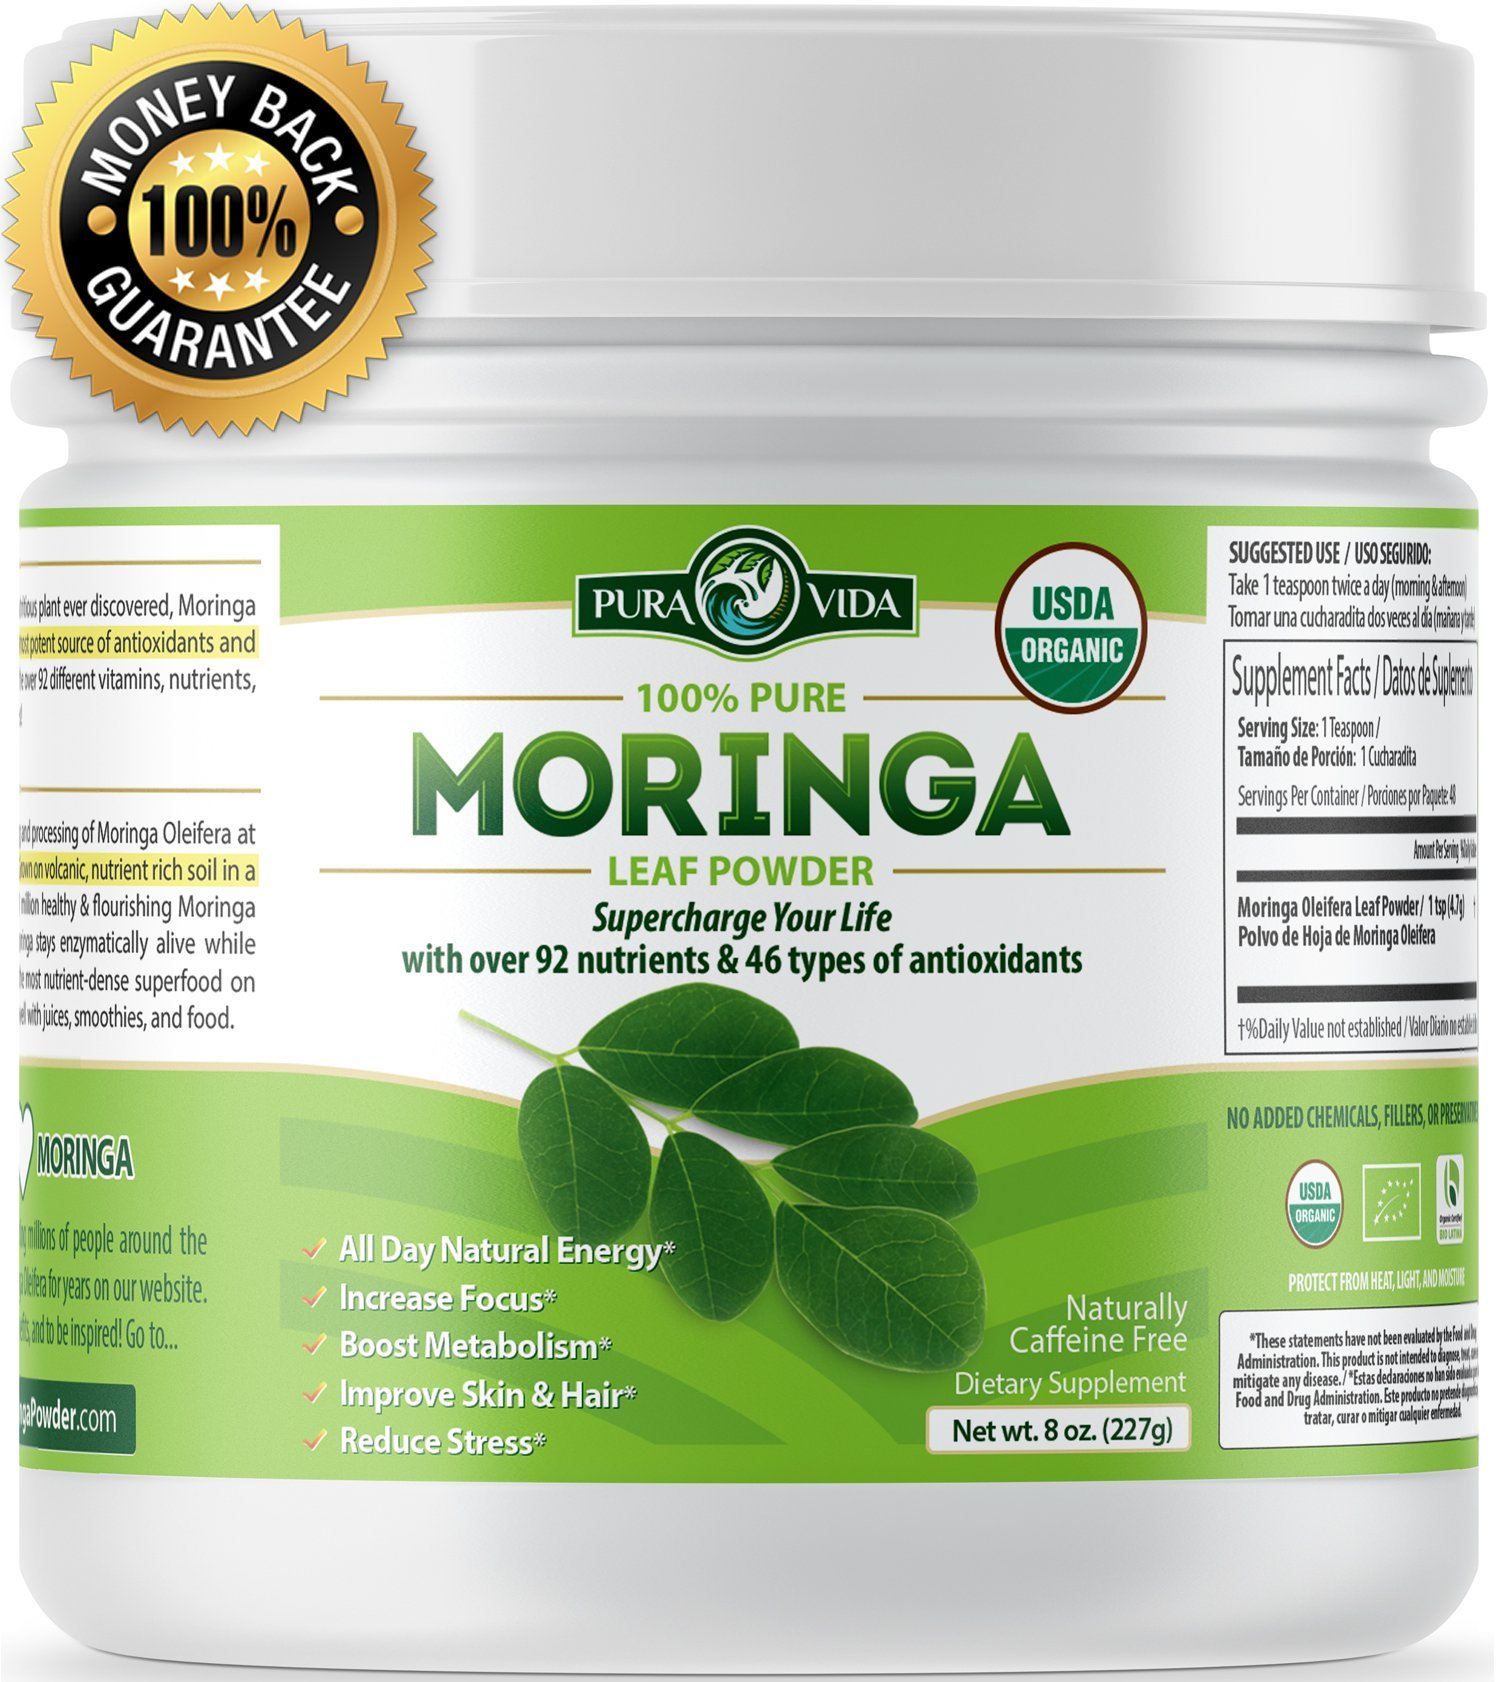 PURA VIDA Moringa Oleifera Powder: USDA Certified Organic. Single Origin Green Superfood Supplement For